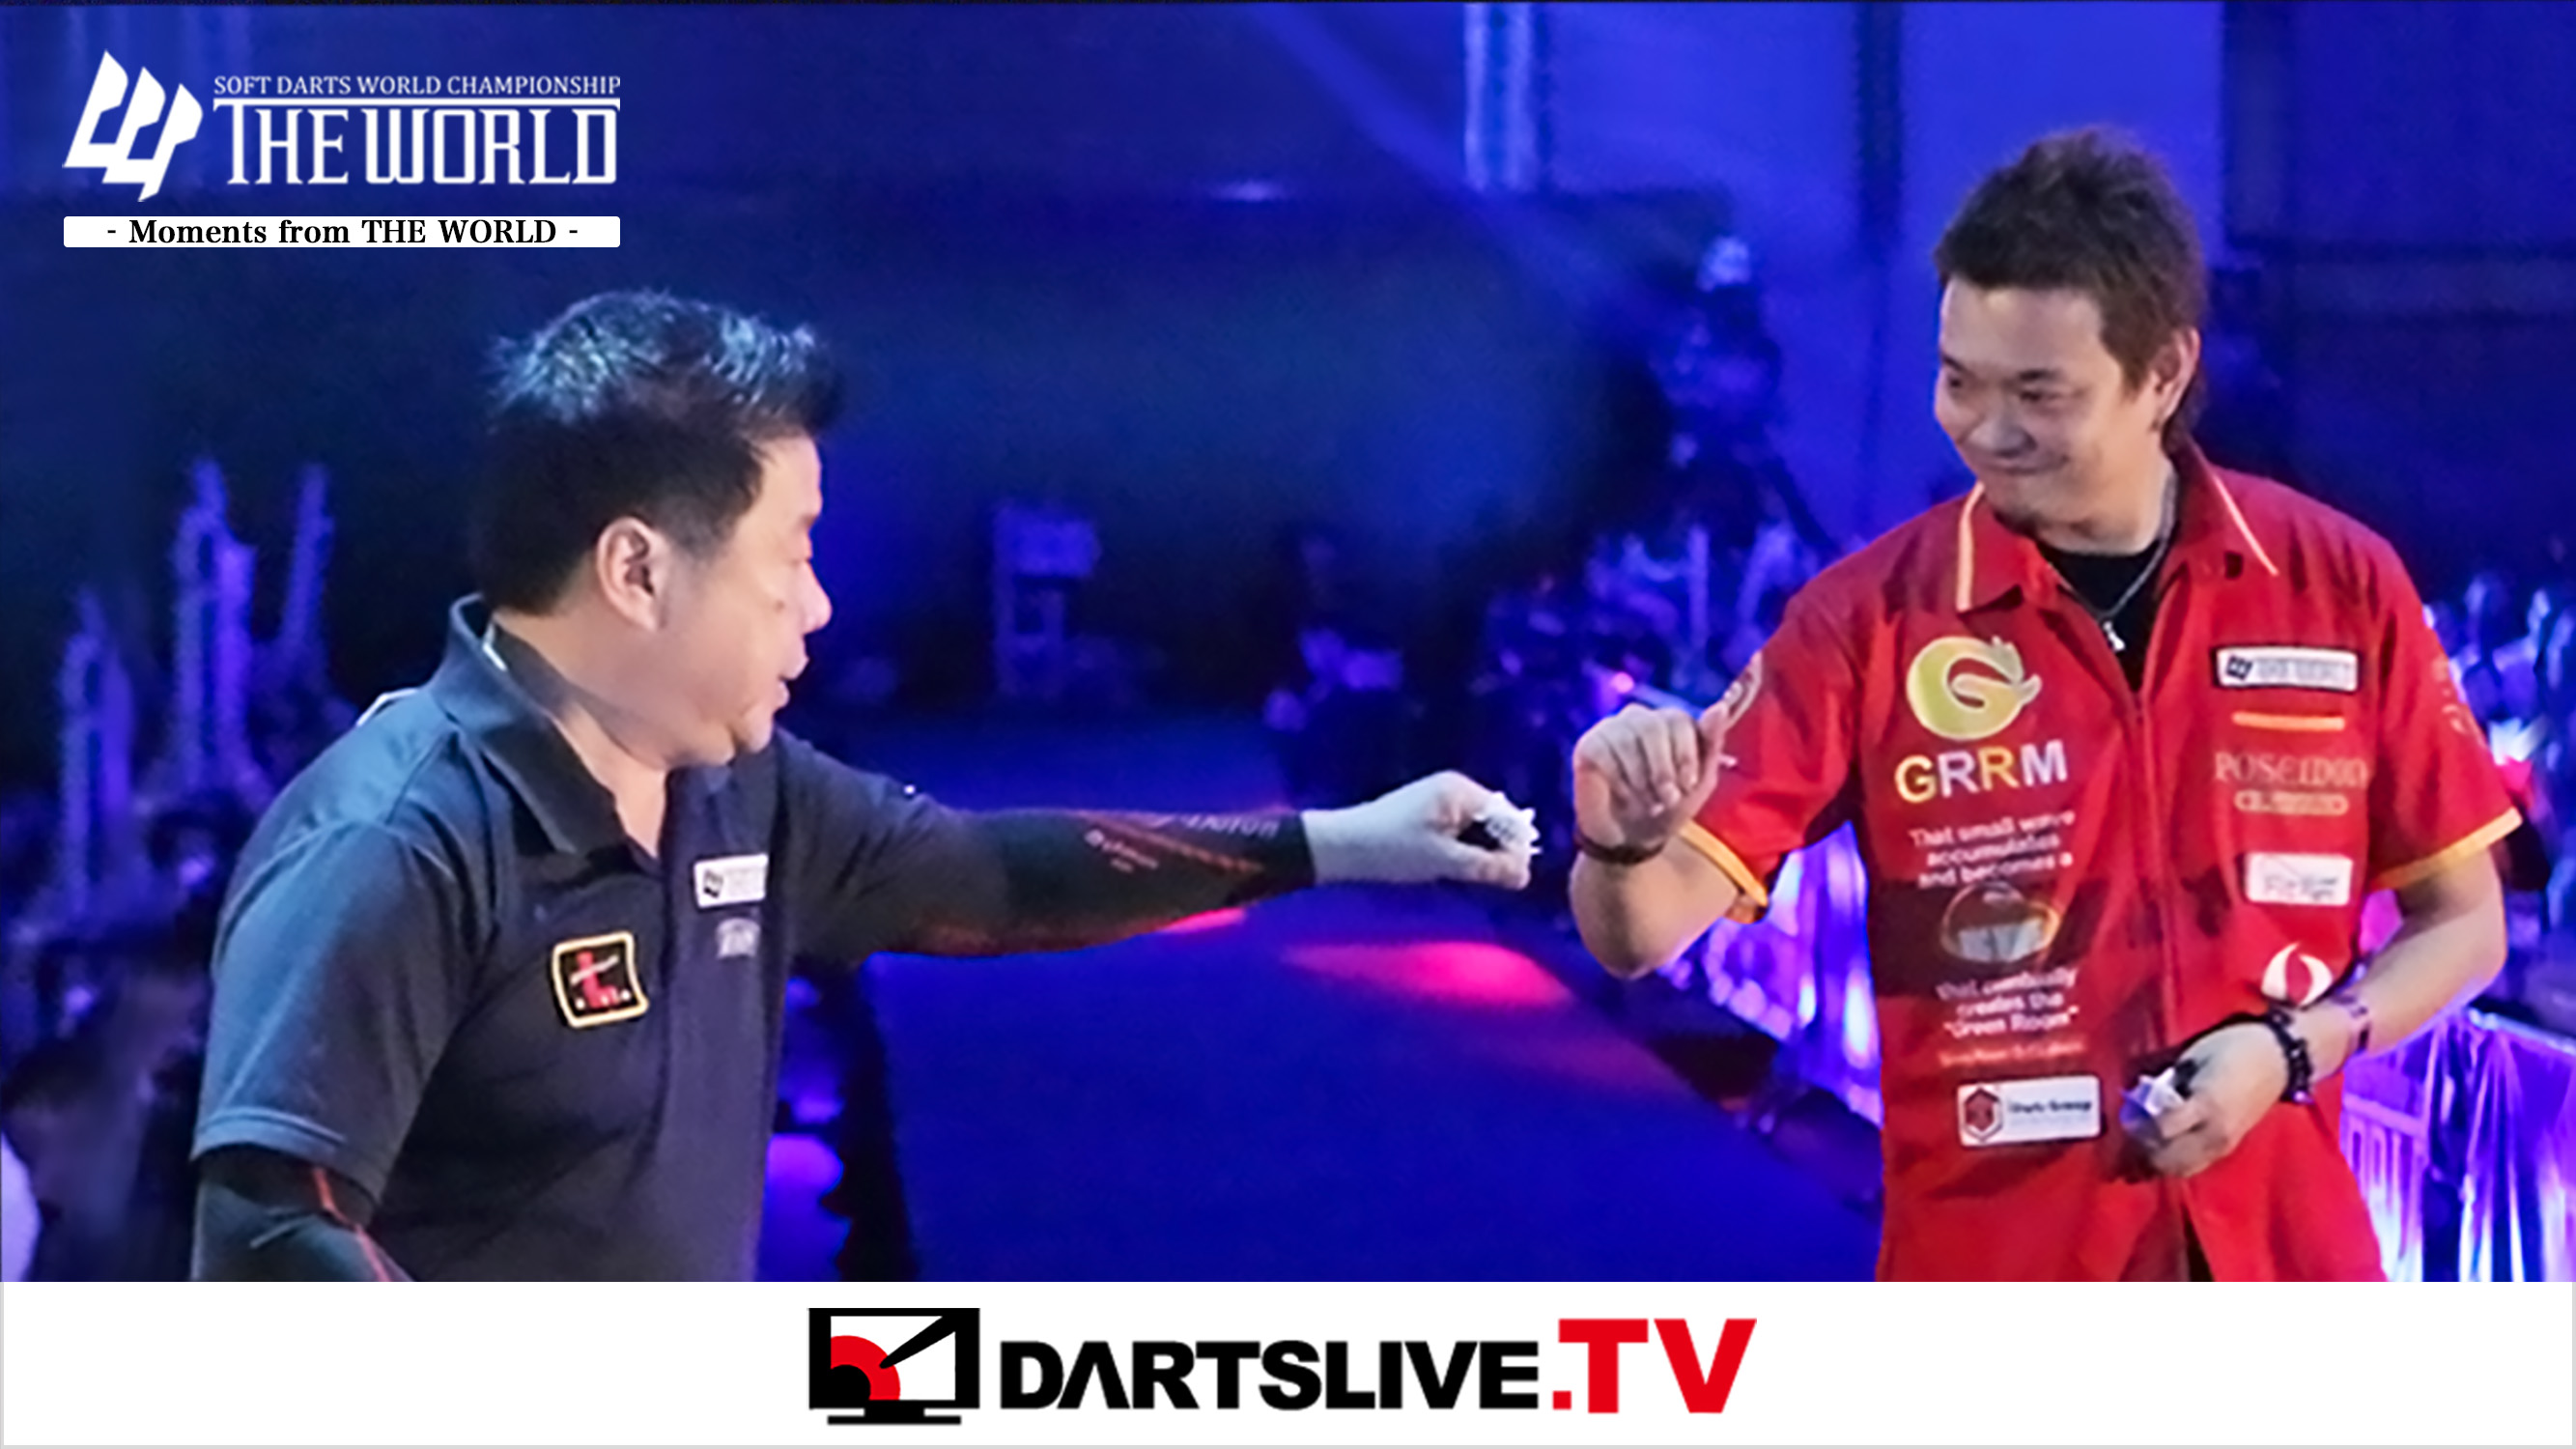 Must-See Match: Takehiro Suzuki vs Paul Lim【DARTSLIVE.TV】